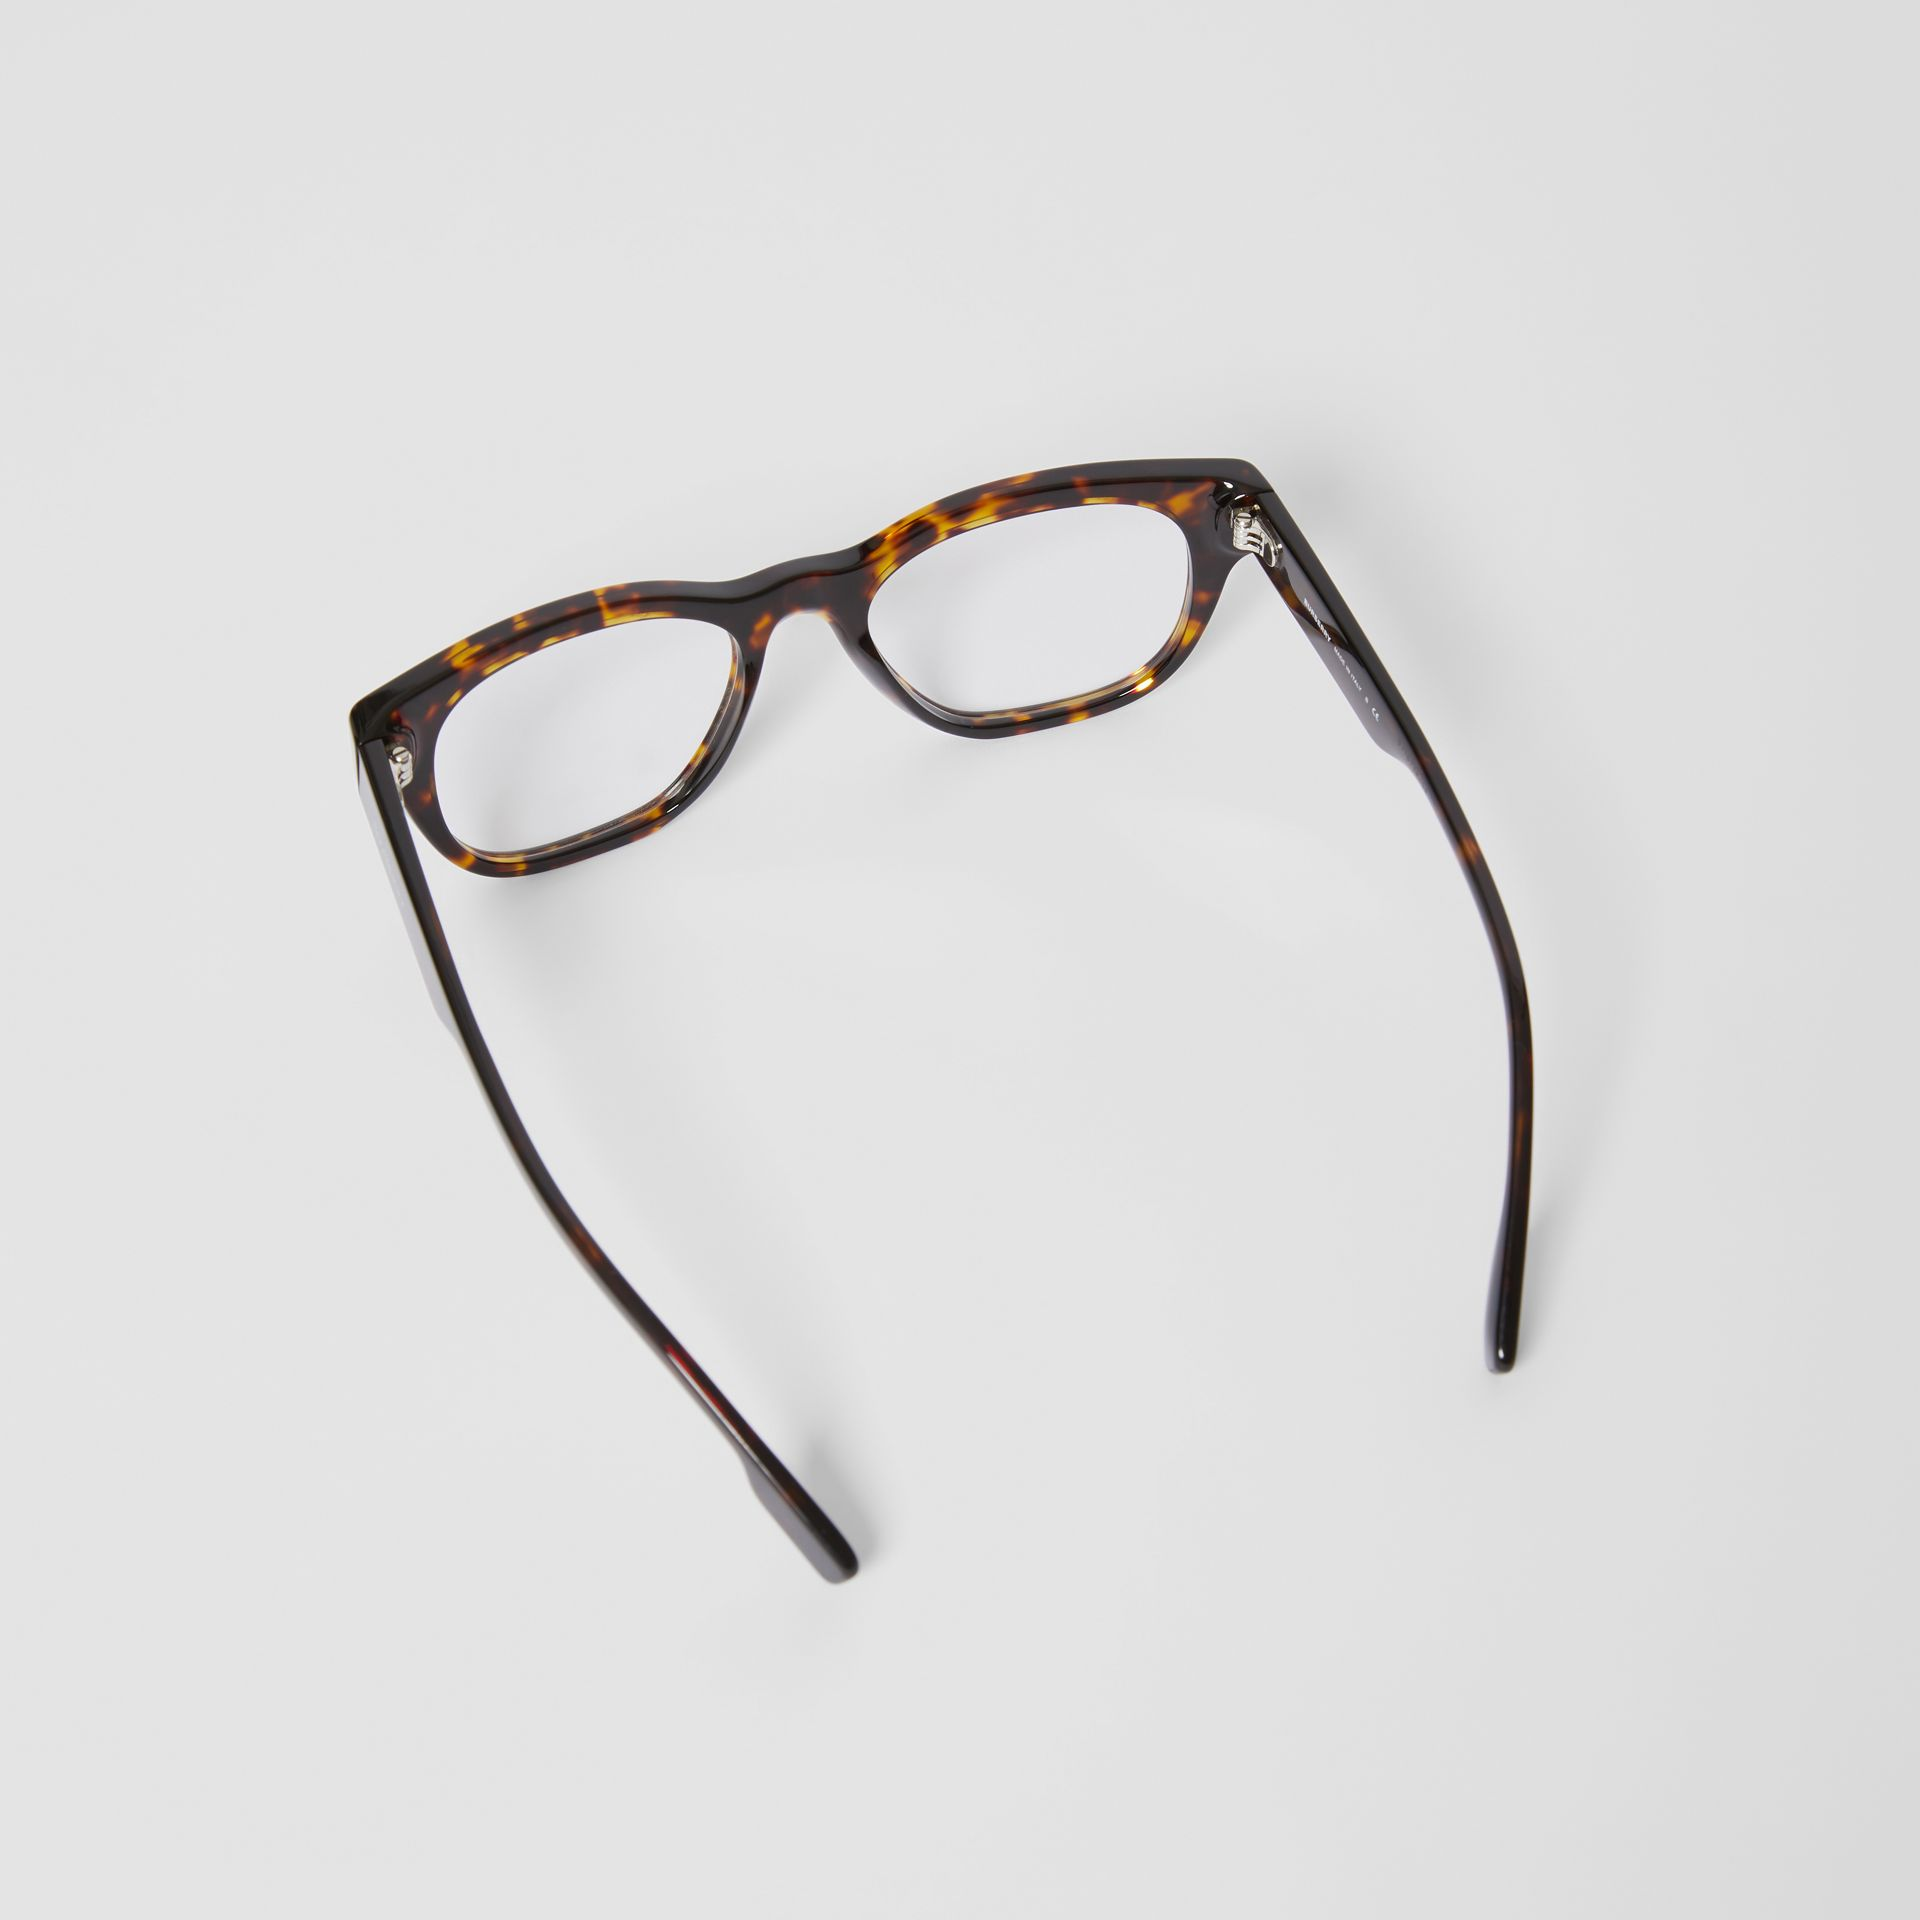 Square Optical Frames in Tortoiseshell - Men | Burberry - gallery image 4